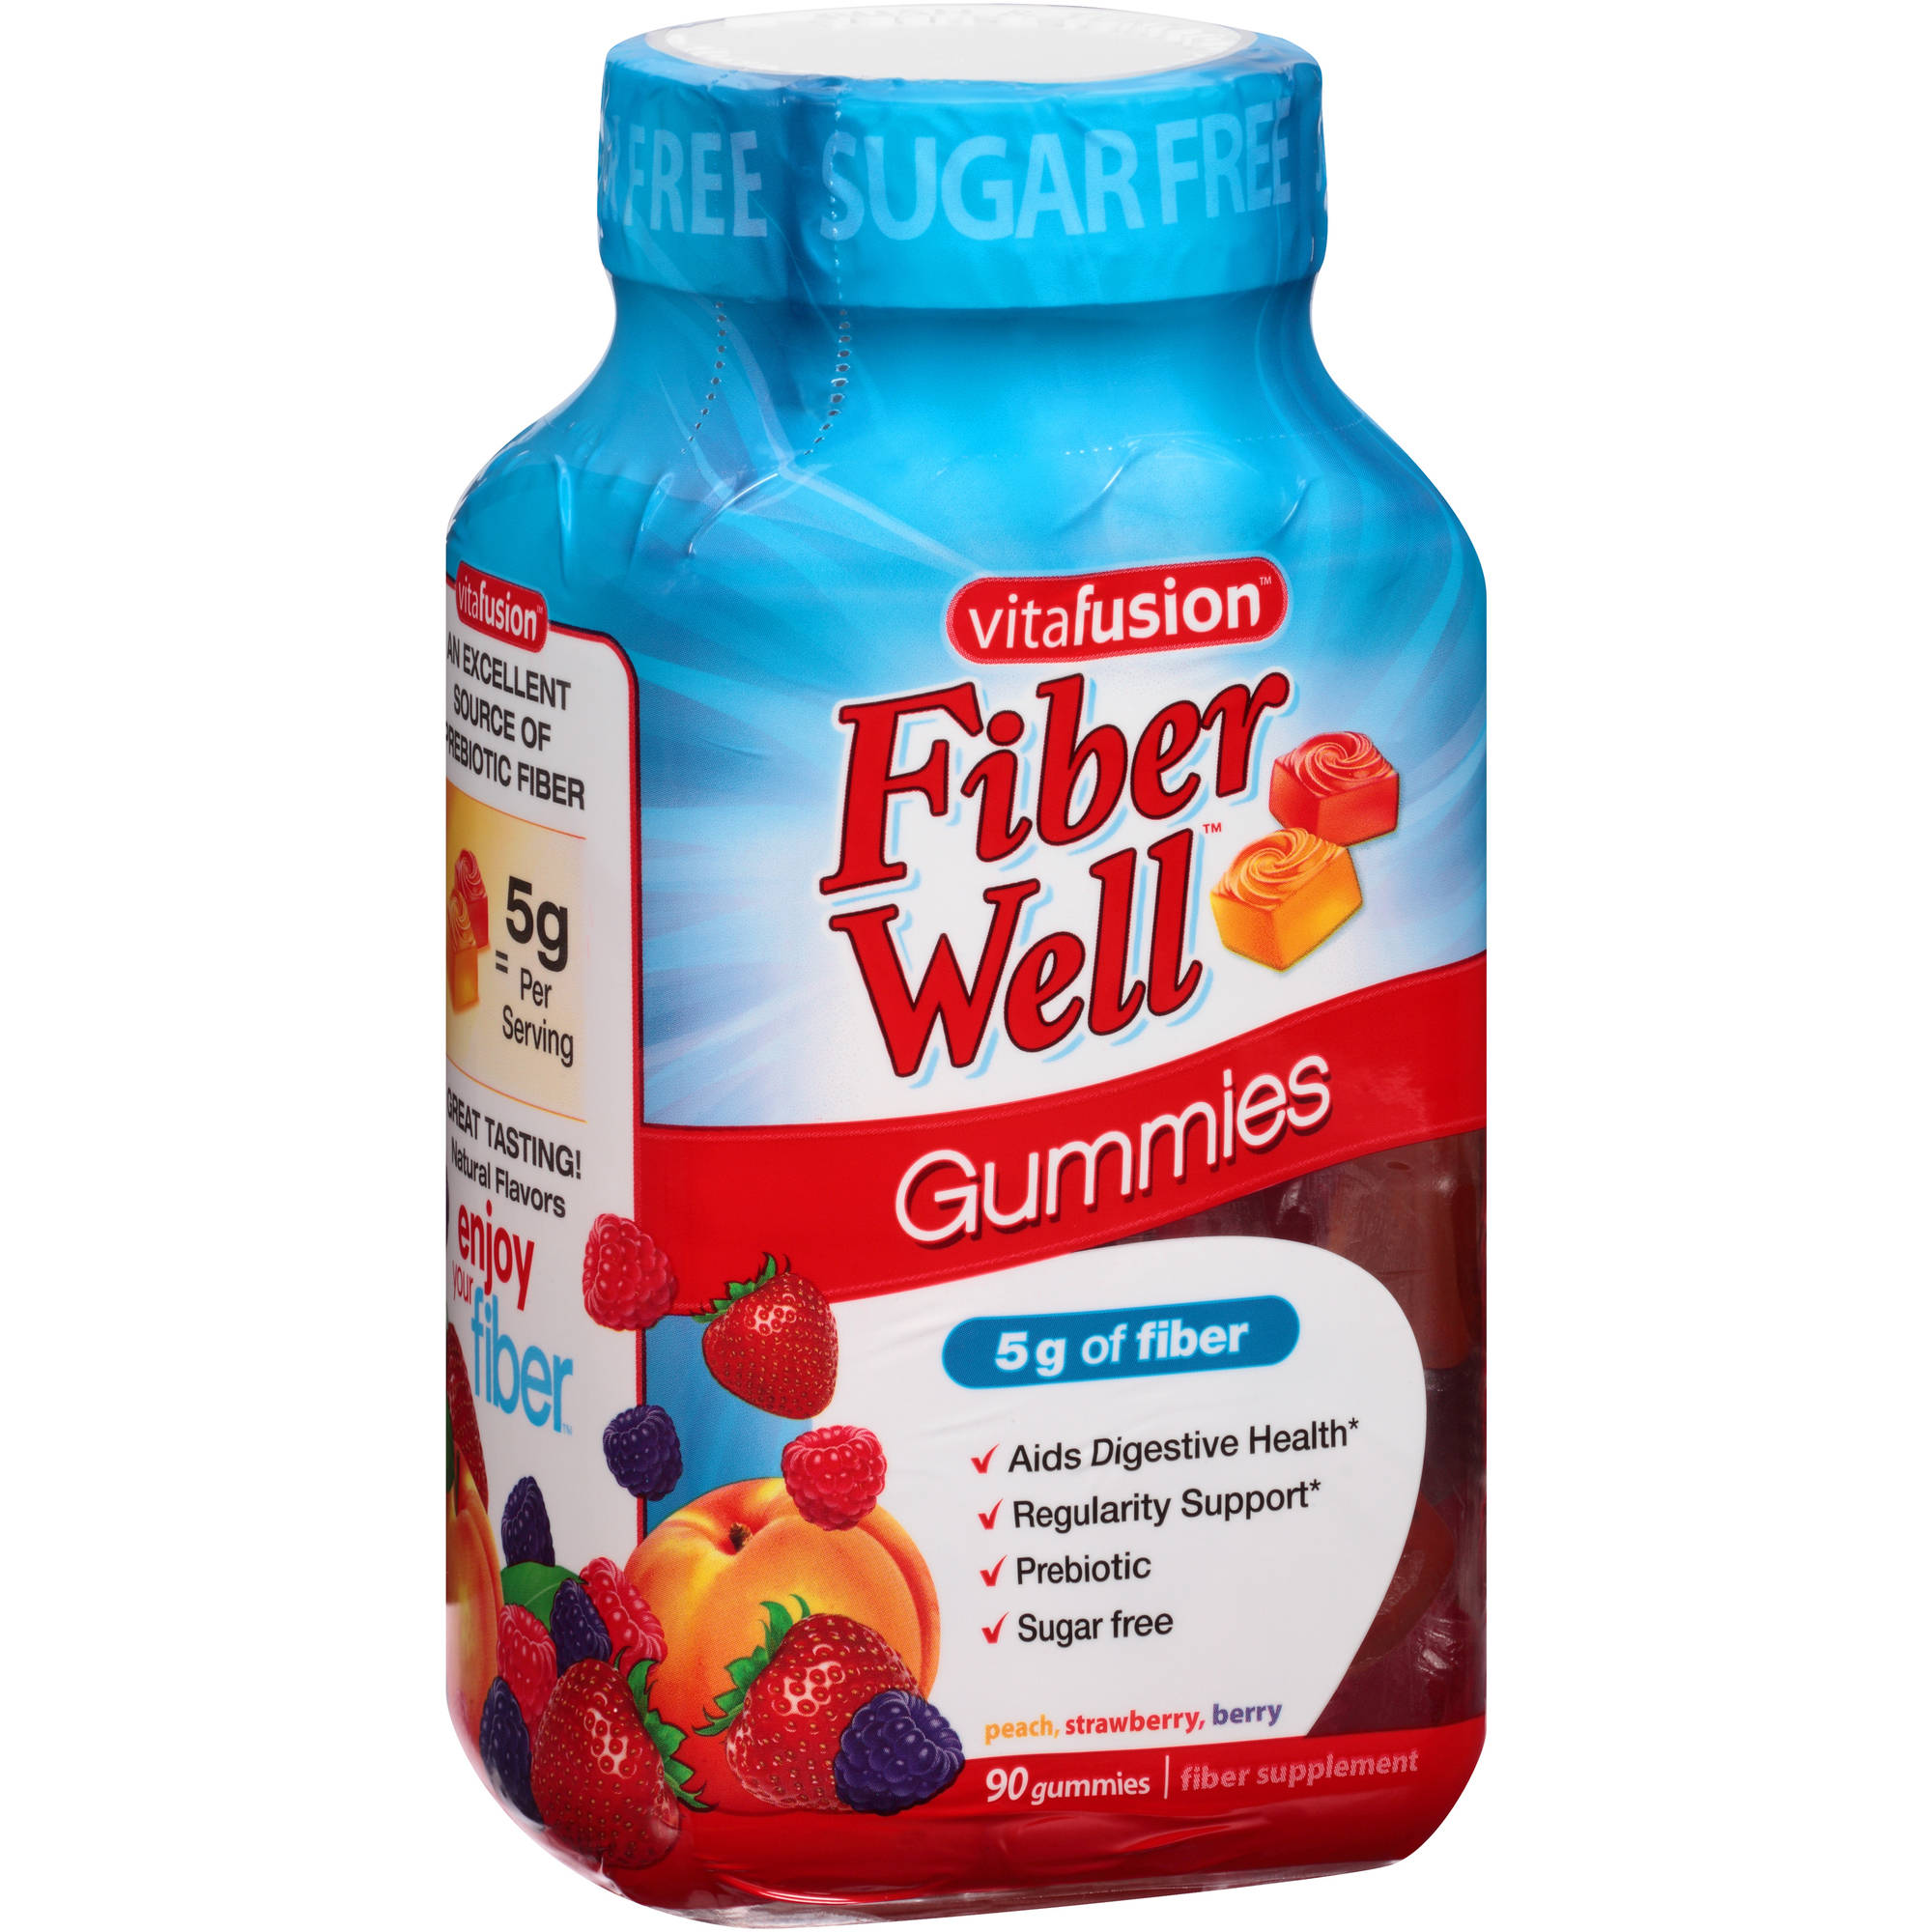 Vitafusion Fiber Well Gummies Prebiotic Fiber Supplement, 90 count